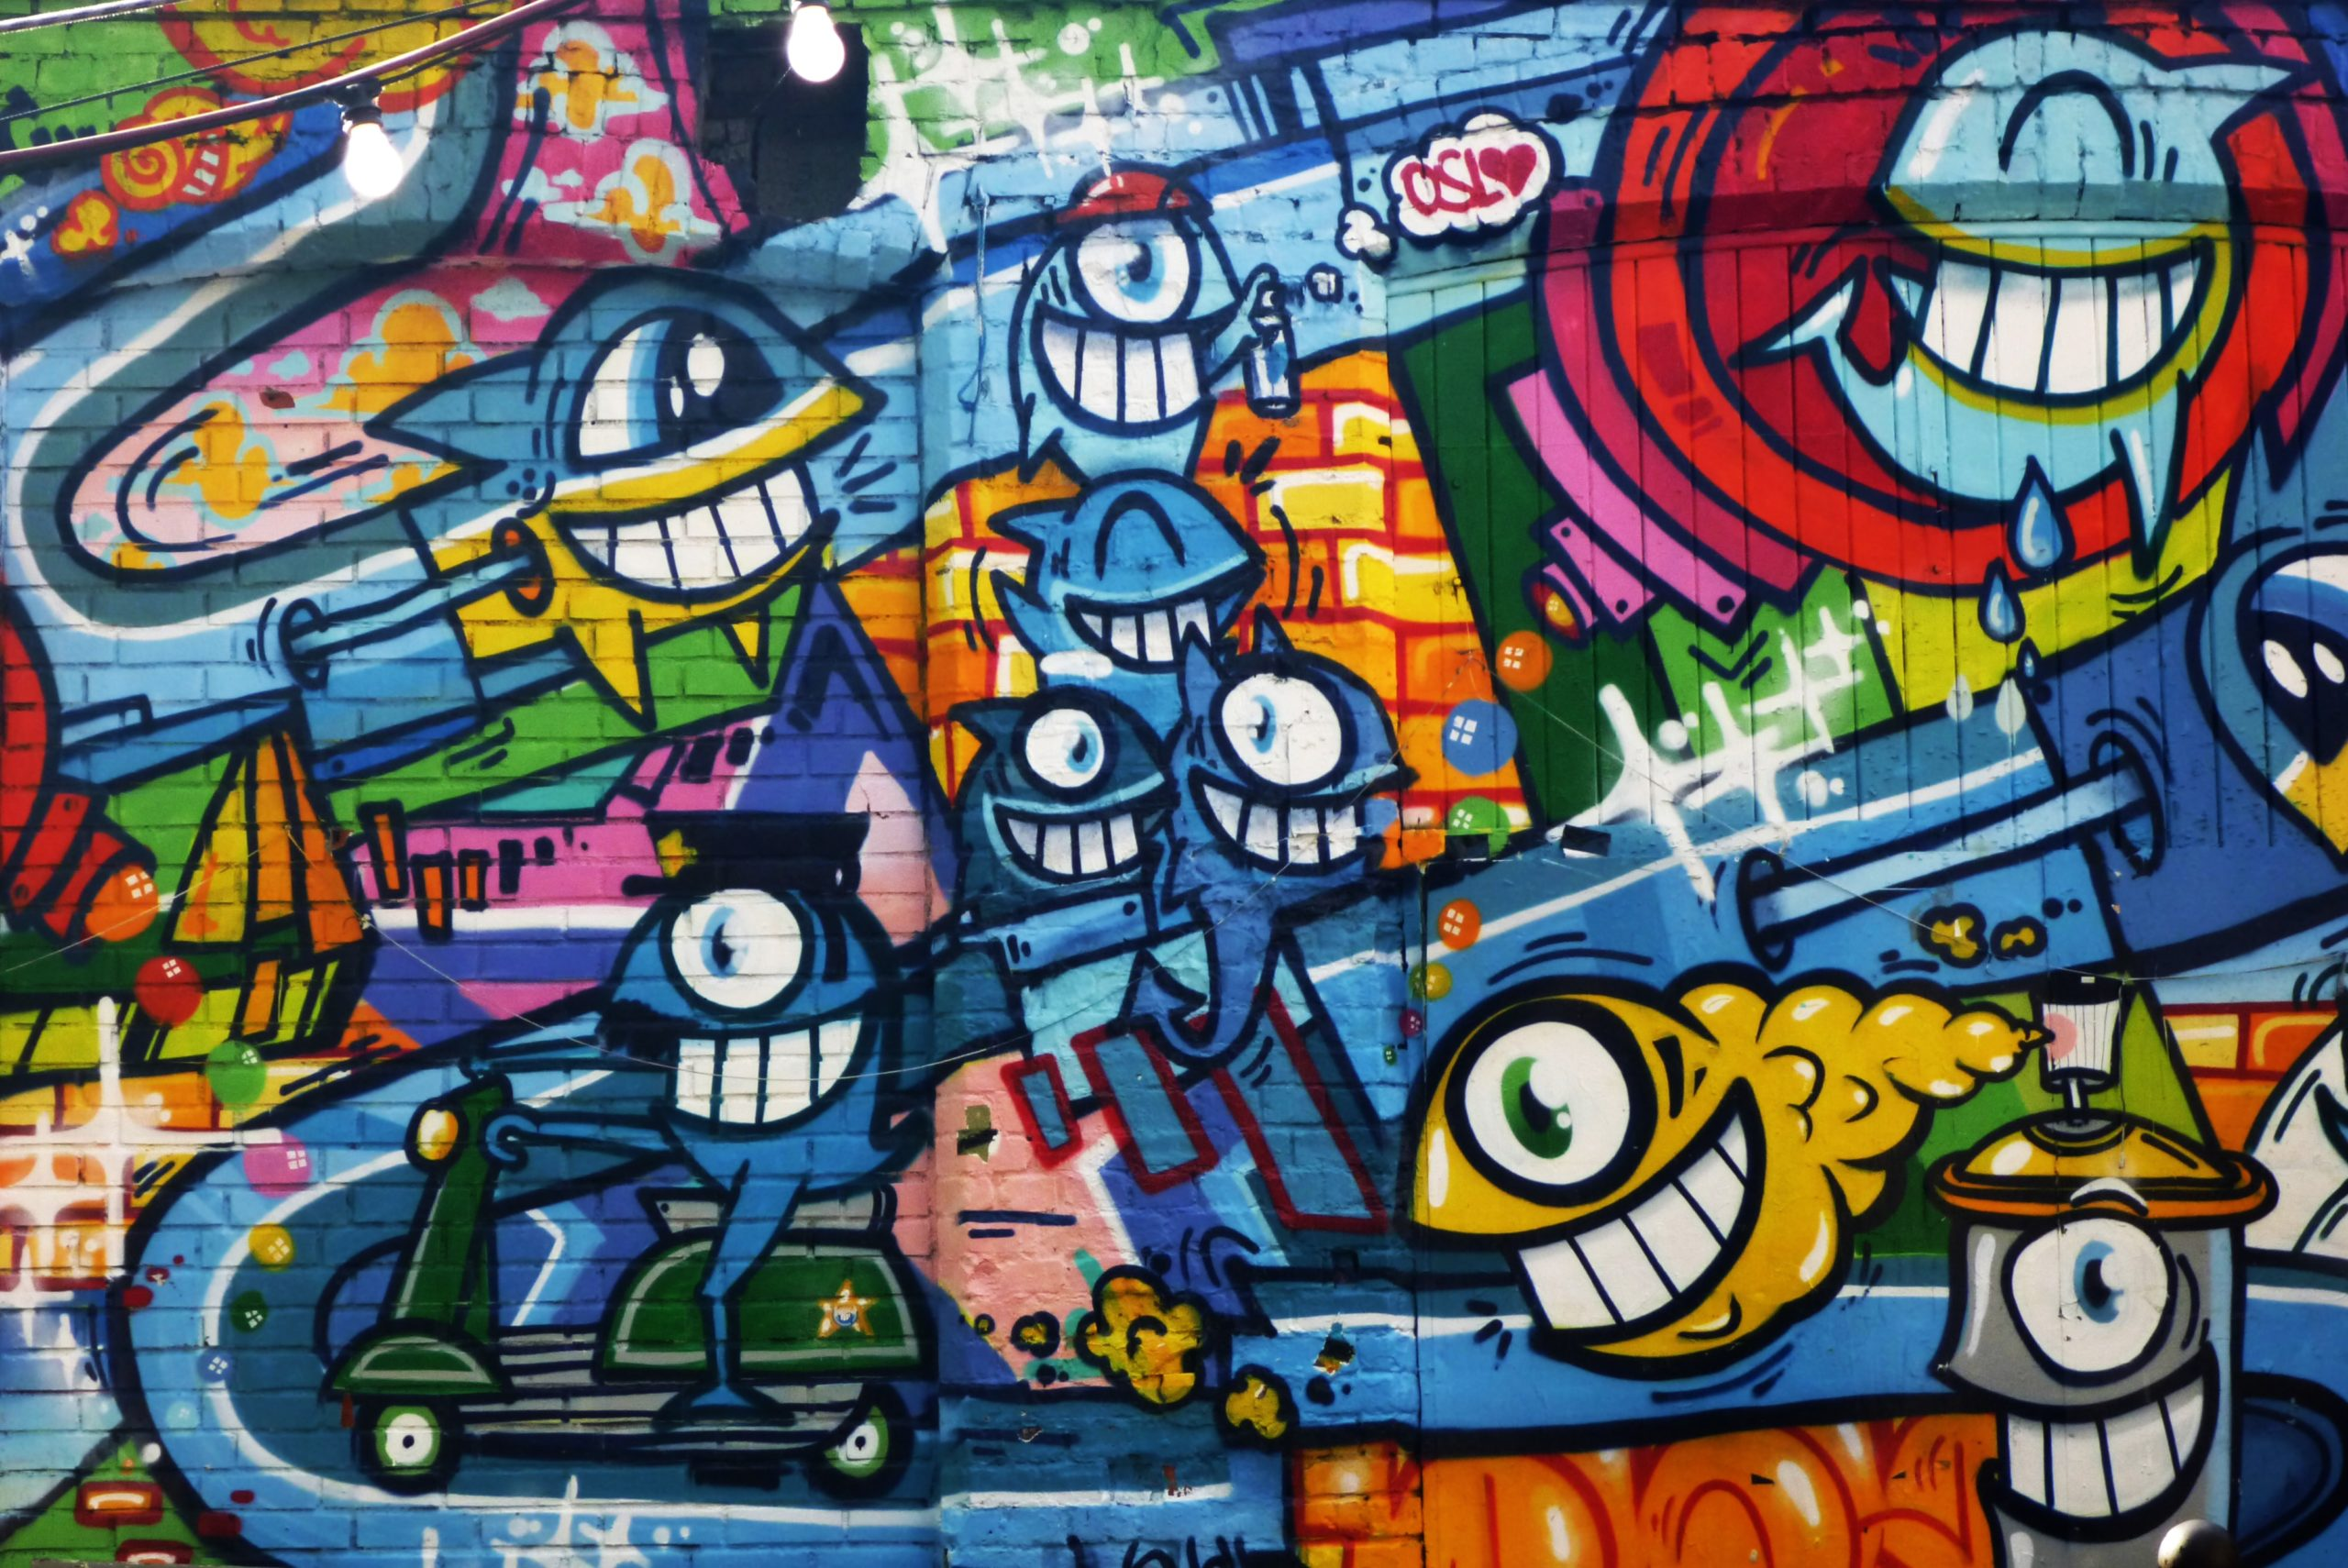 5 Interesting Facts About Graffiti - Controversial Art Form